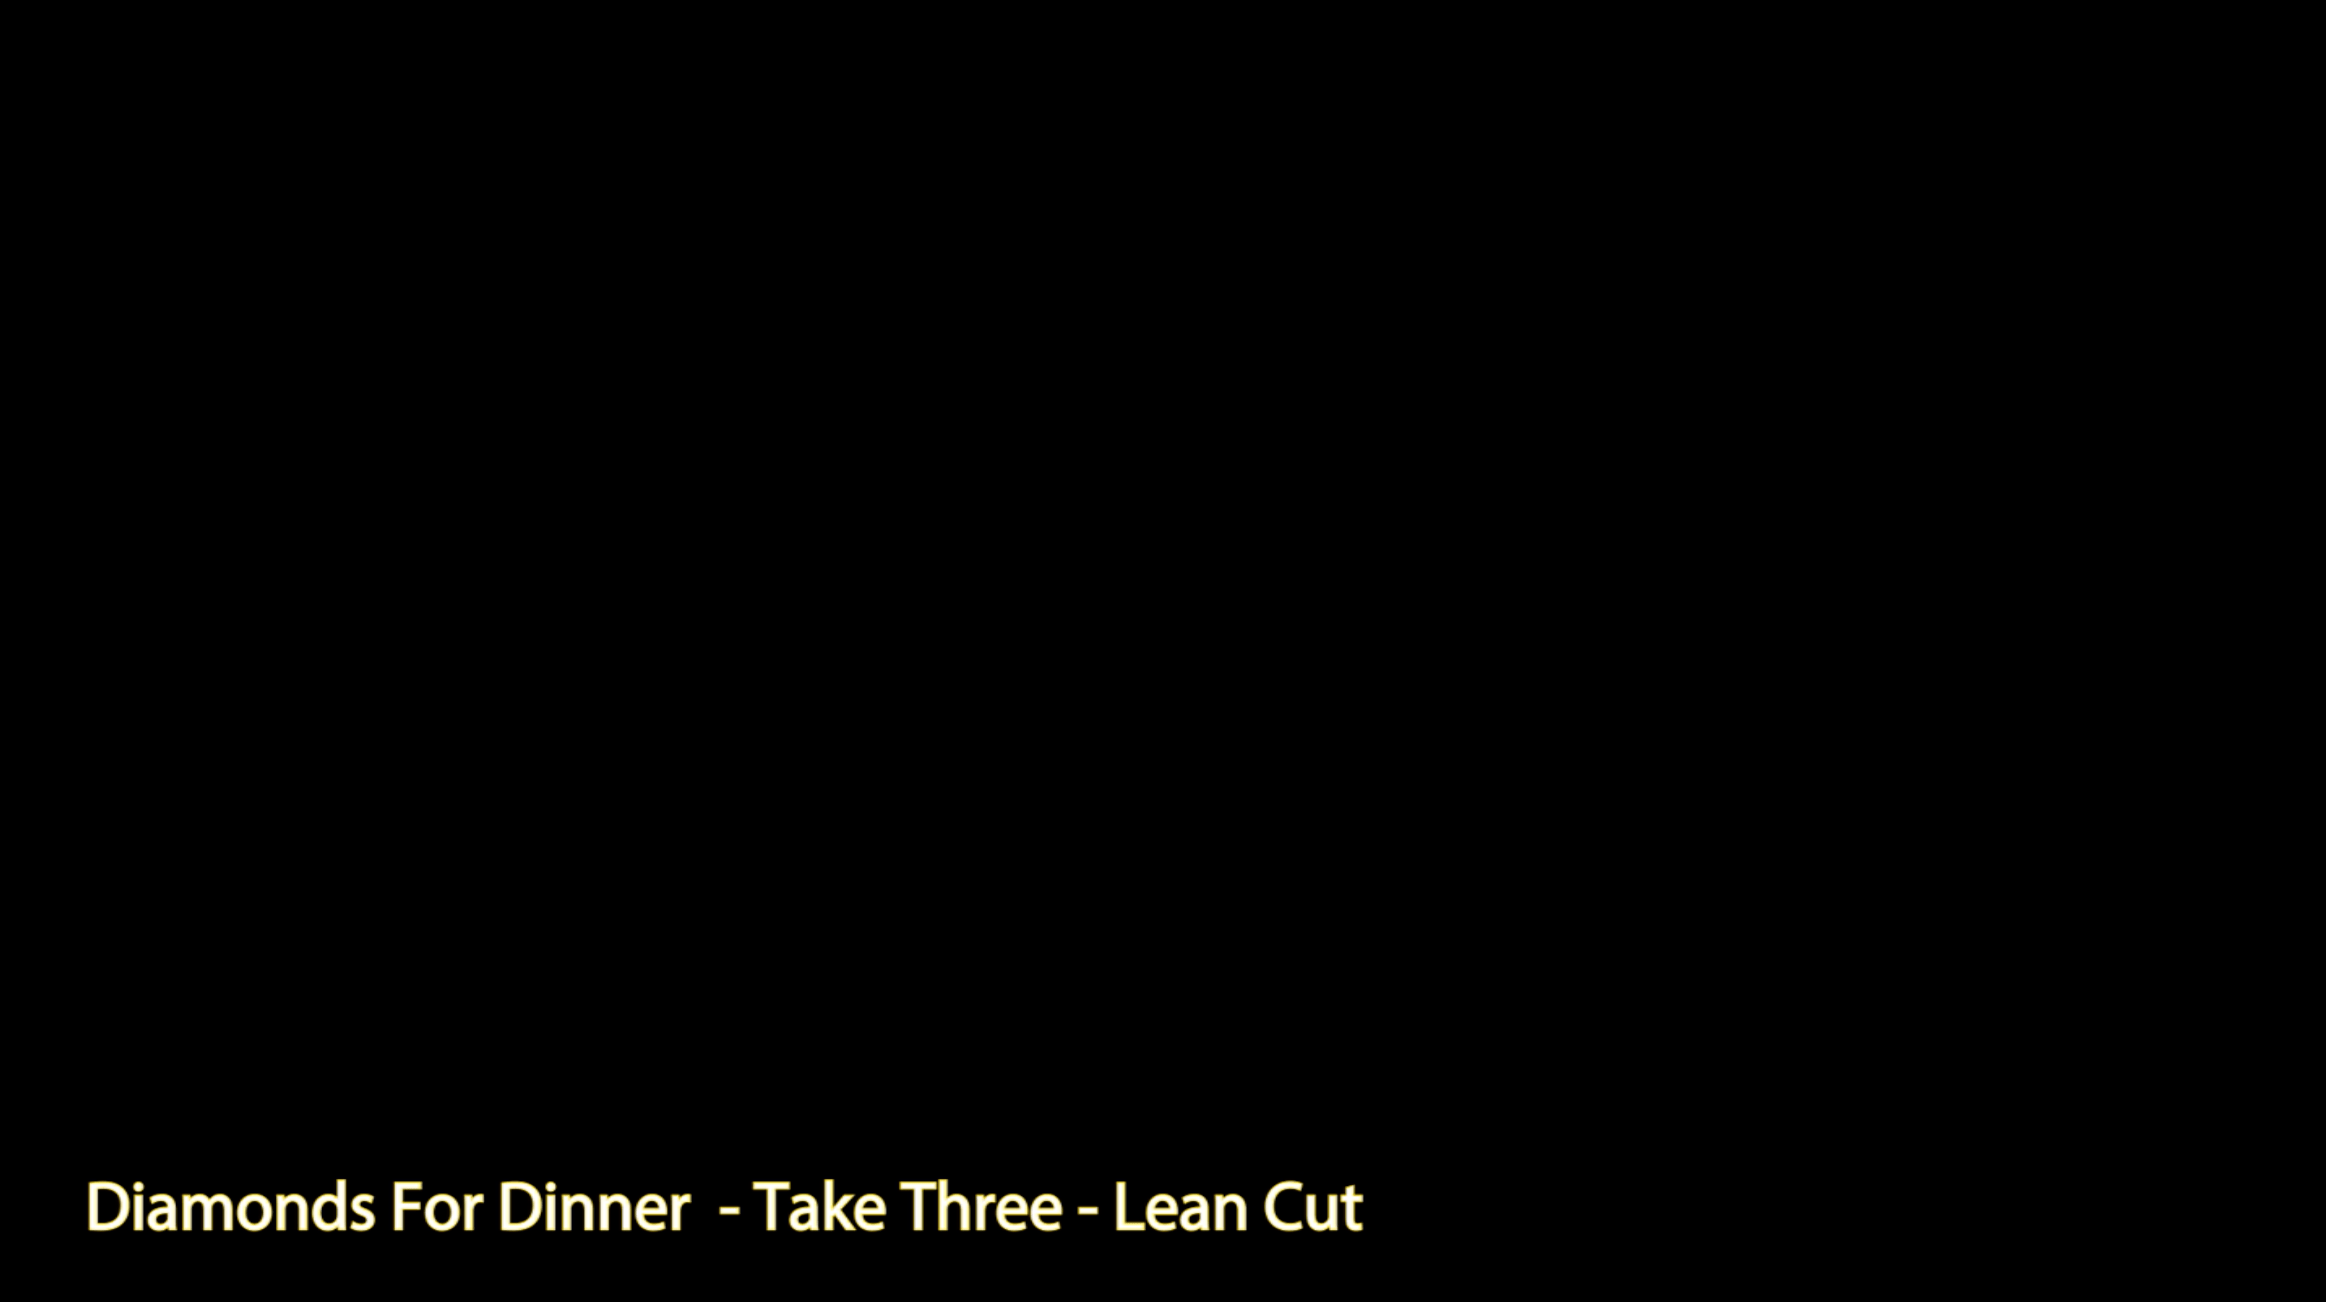 Diamonds For Dinner - Take Three - Lean Cut